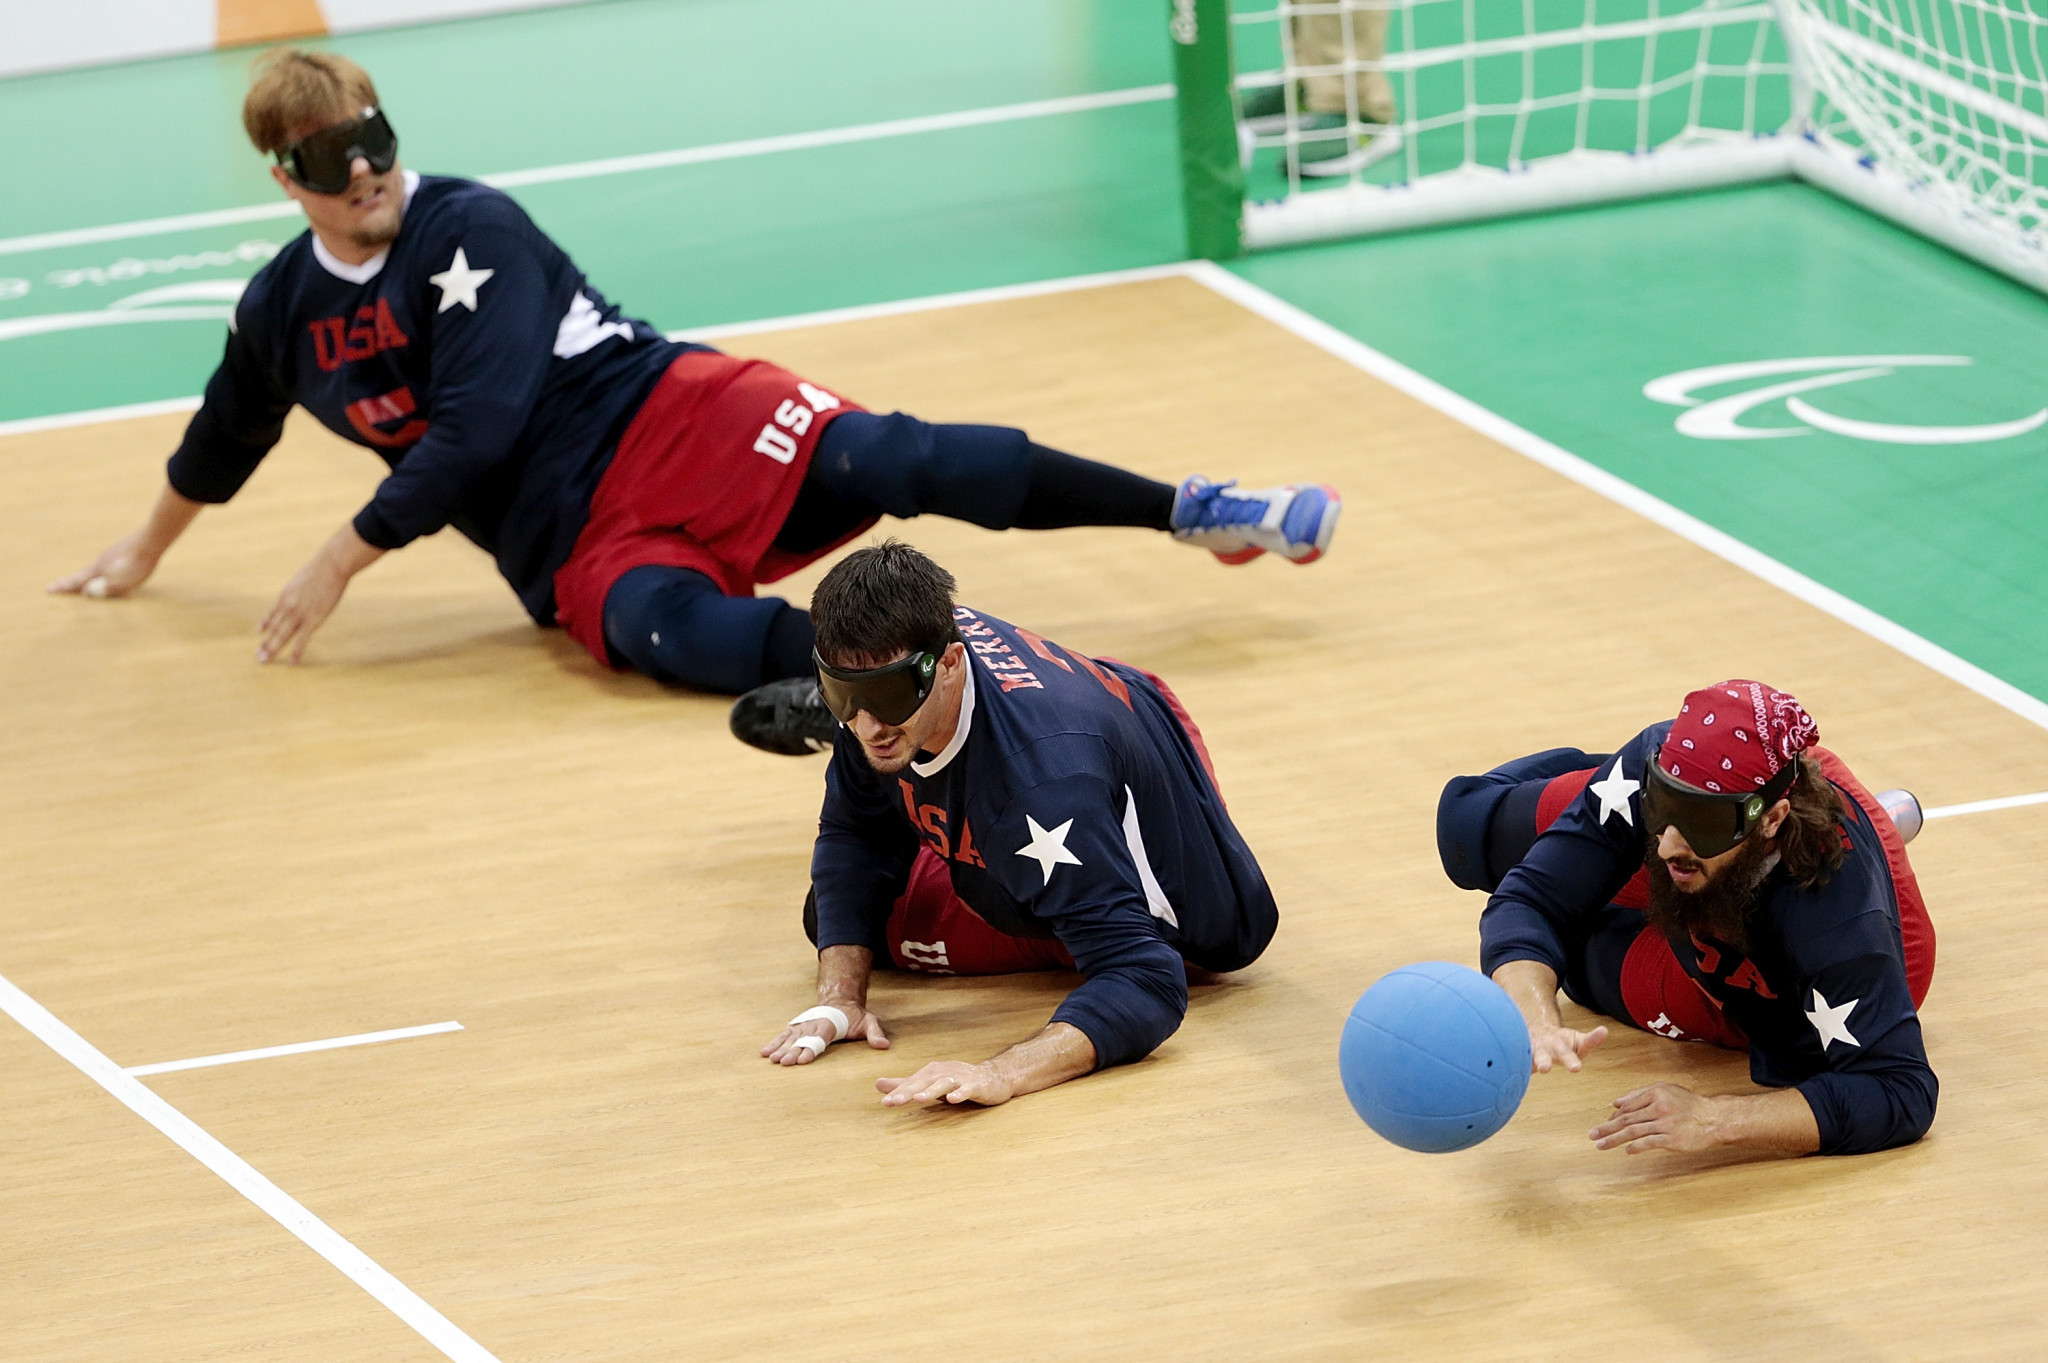 The US men reached the gold-medal match at Rio 2016 but were beaten by Lithuania ©Getty Images